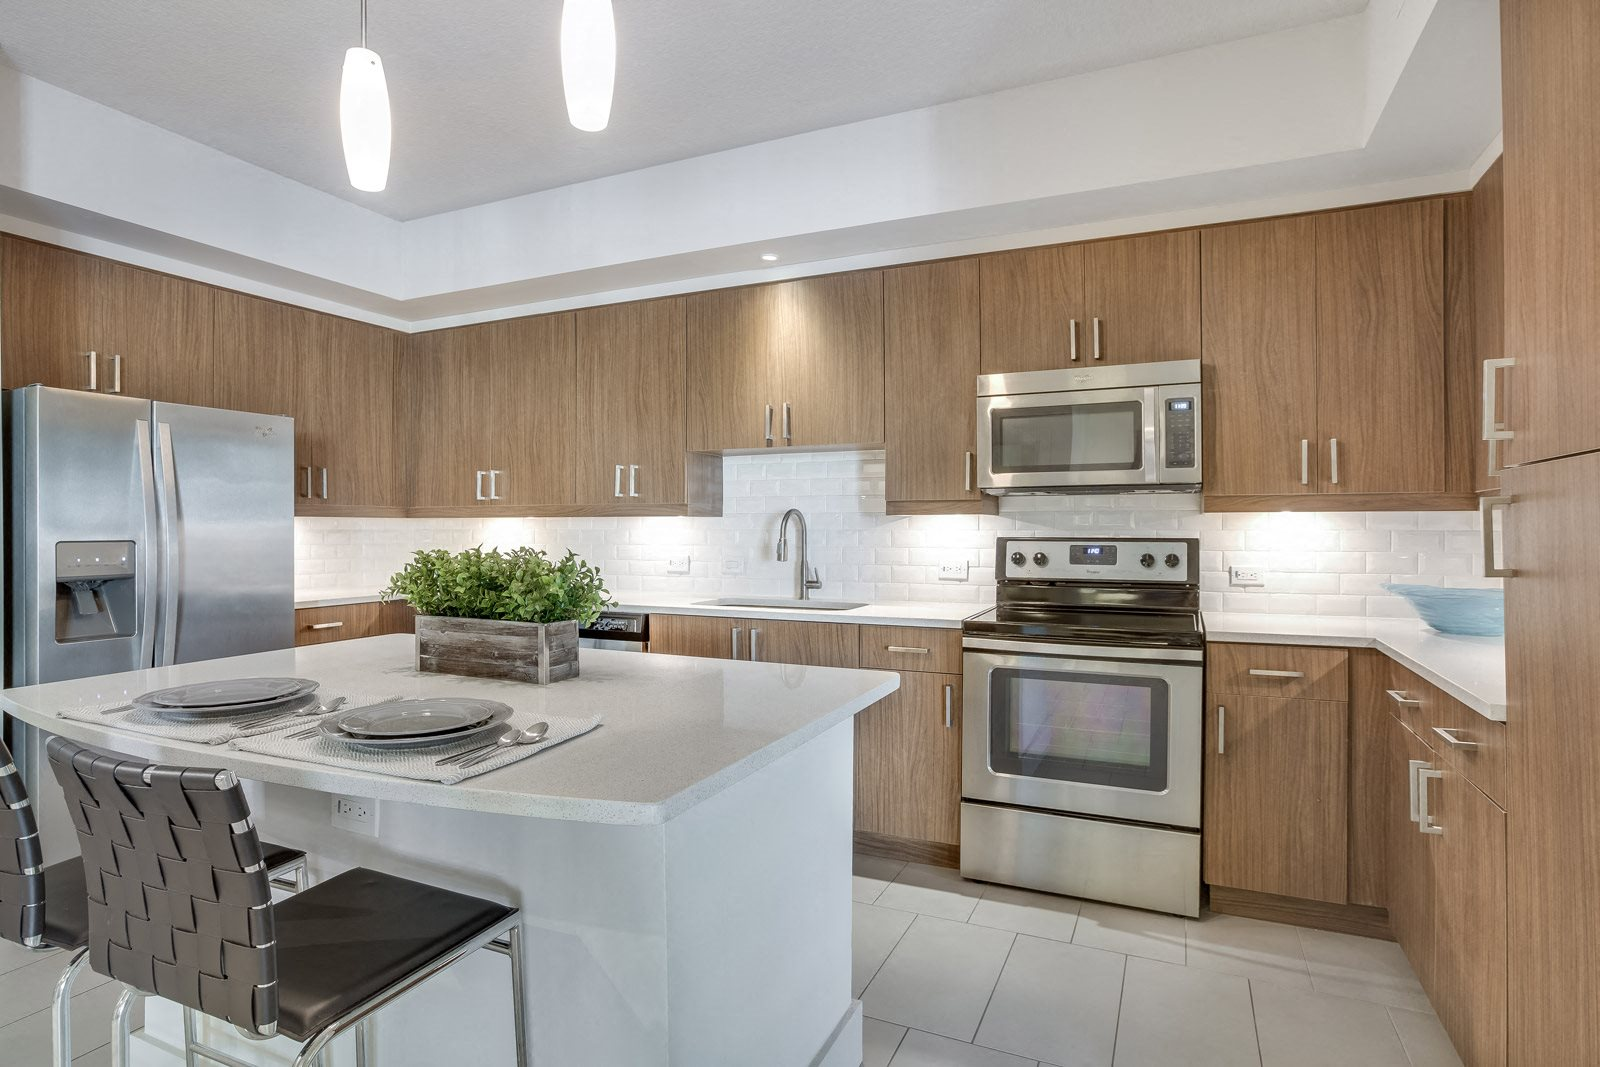 Chef-Inspired Kitchens with Quartz Counters and Stainless Steel Appliances at Windsor at Doral, 4401 NW 87th Avenue, Doral